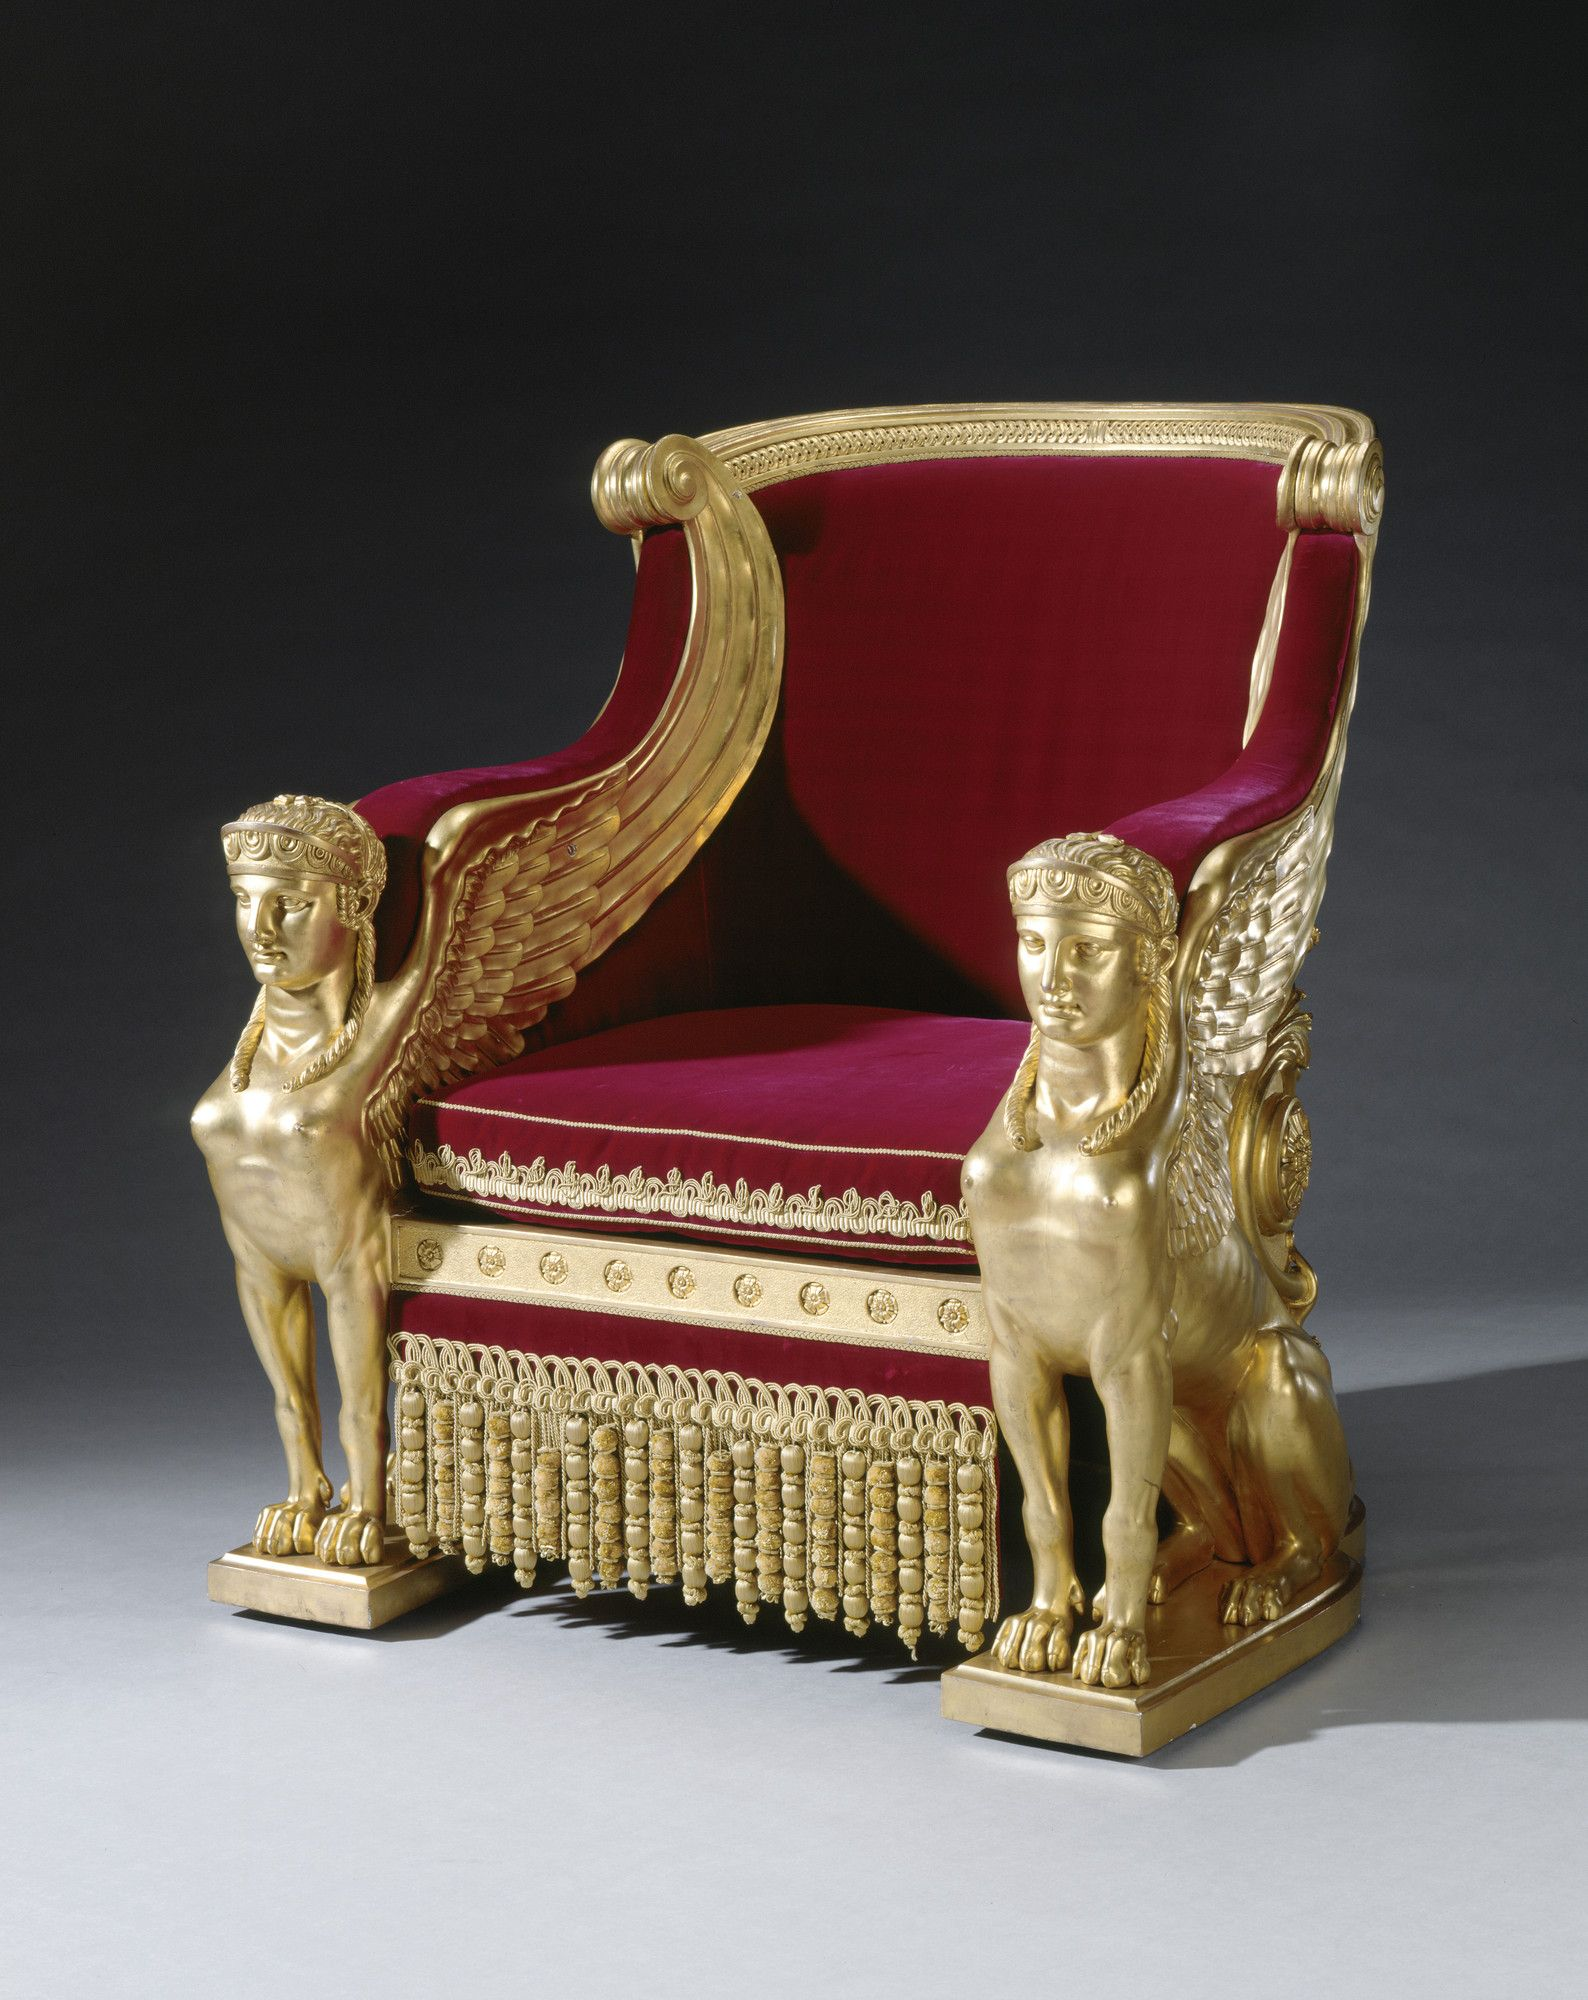 Attractive Tatham, Bailey U0026 Sanders Pair Of Council Chairs, 1812 Gilt Wood, Velvet  Upholstery (Throne Room, Buckingham Palace)